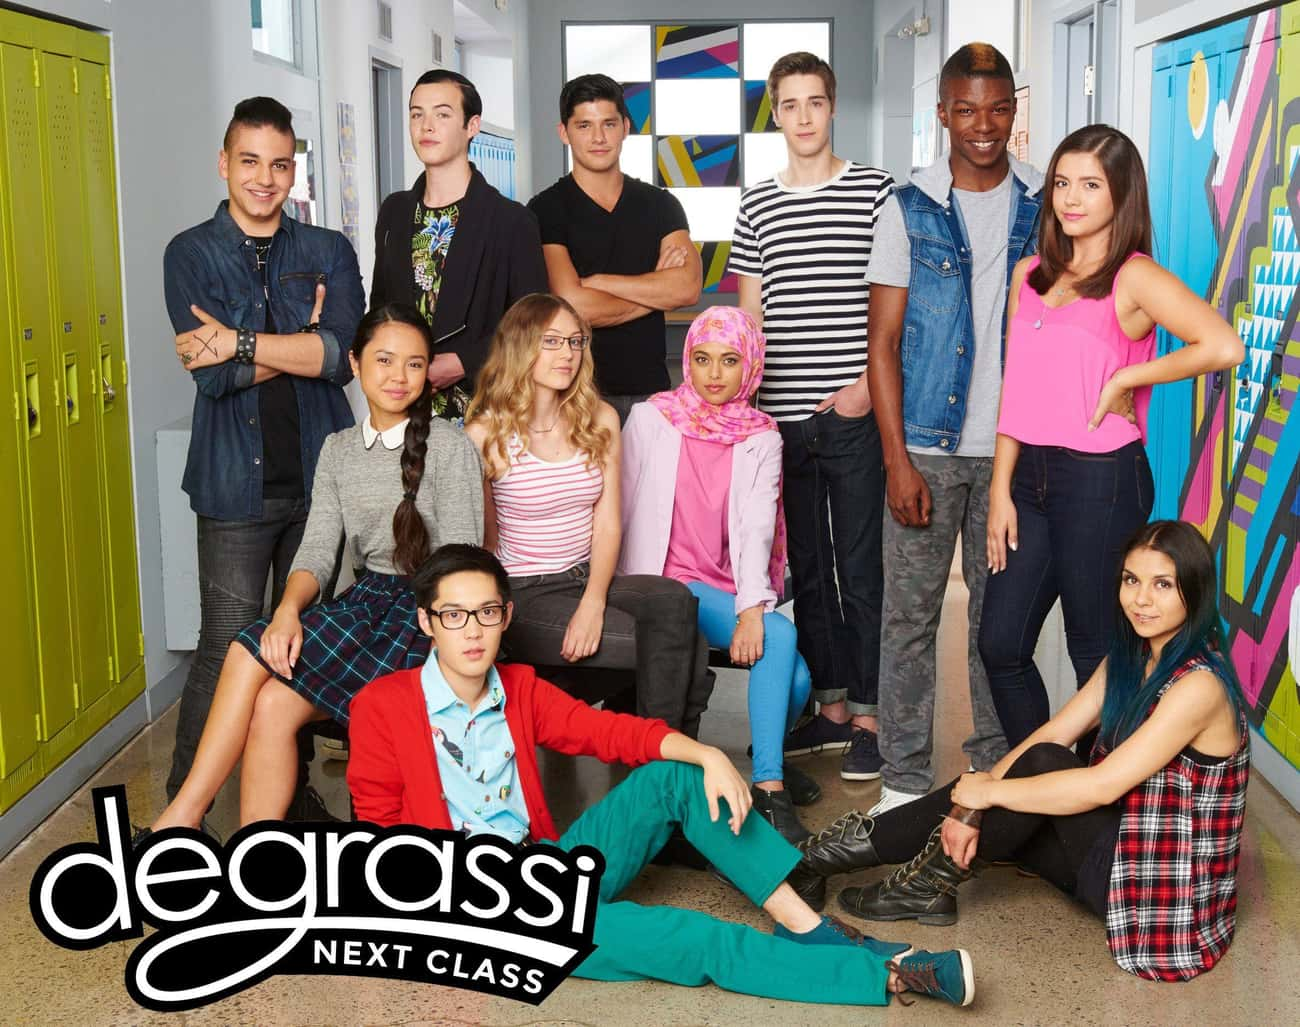 Degrassi: Next Class - Season  is listed (or ranked) 4 on the list Best Seasons of Degrassi: Next Class